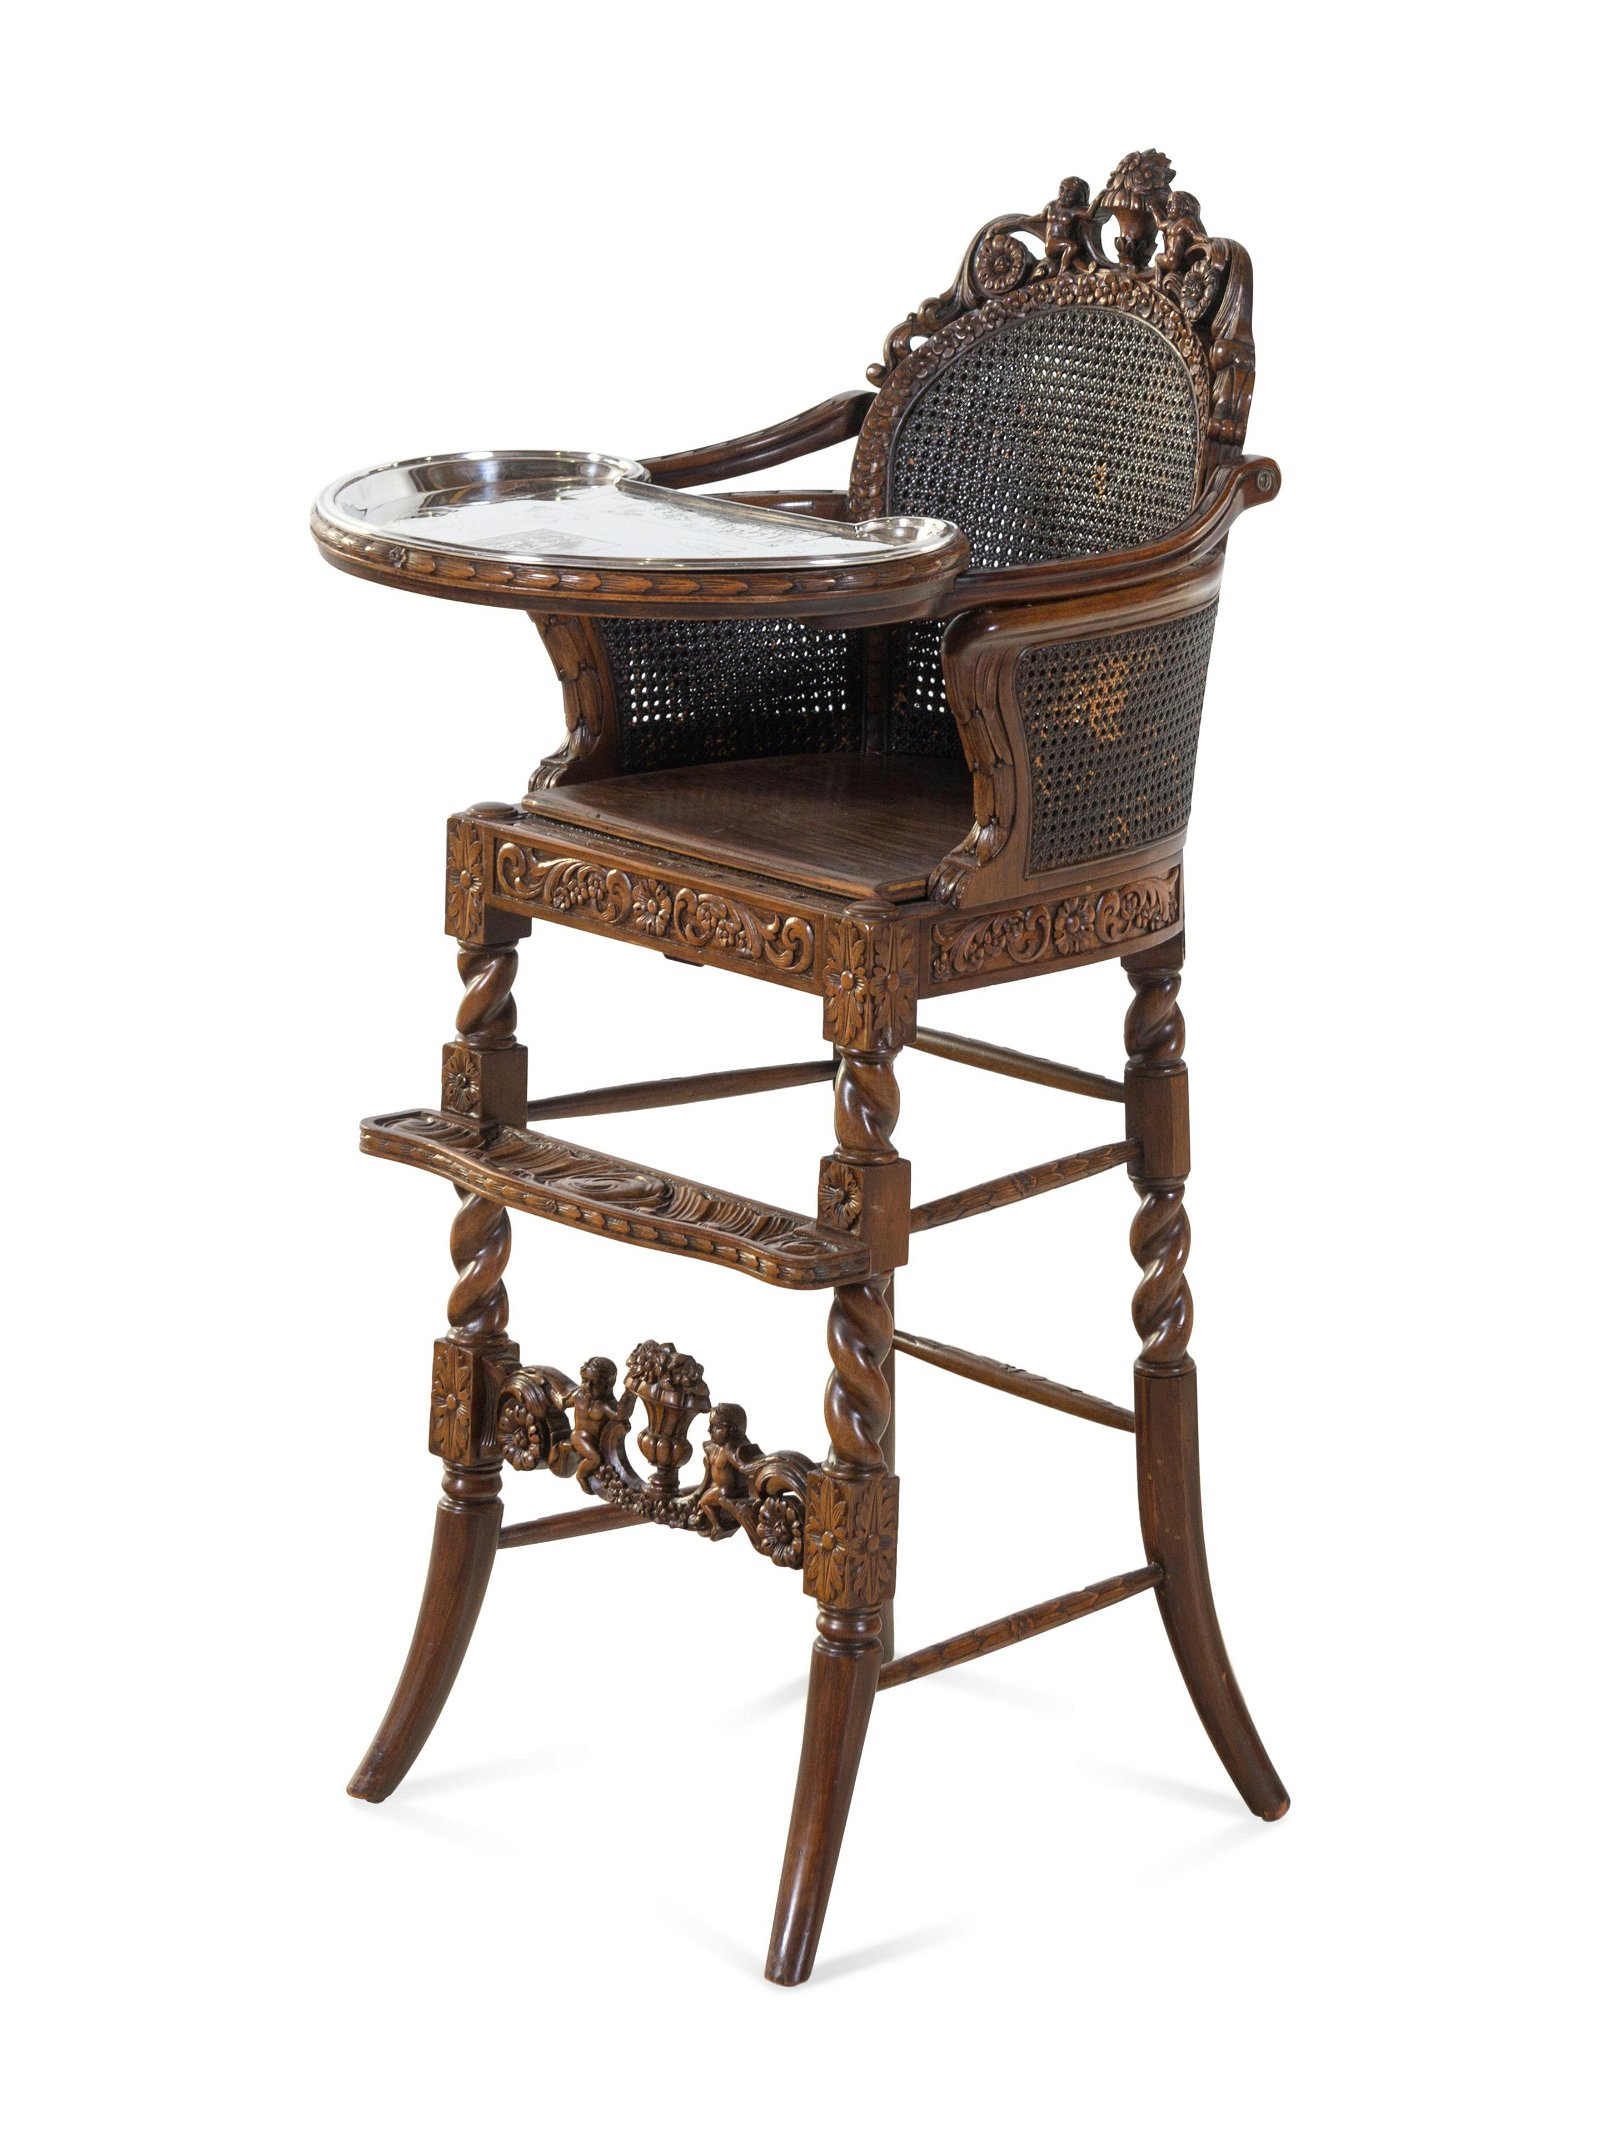 A Rococo Revival Carved Wood High Chair with a Fitted